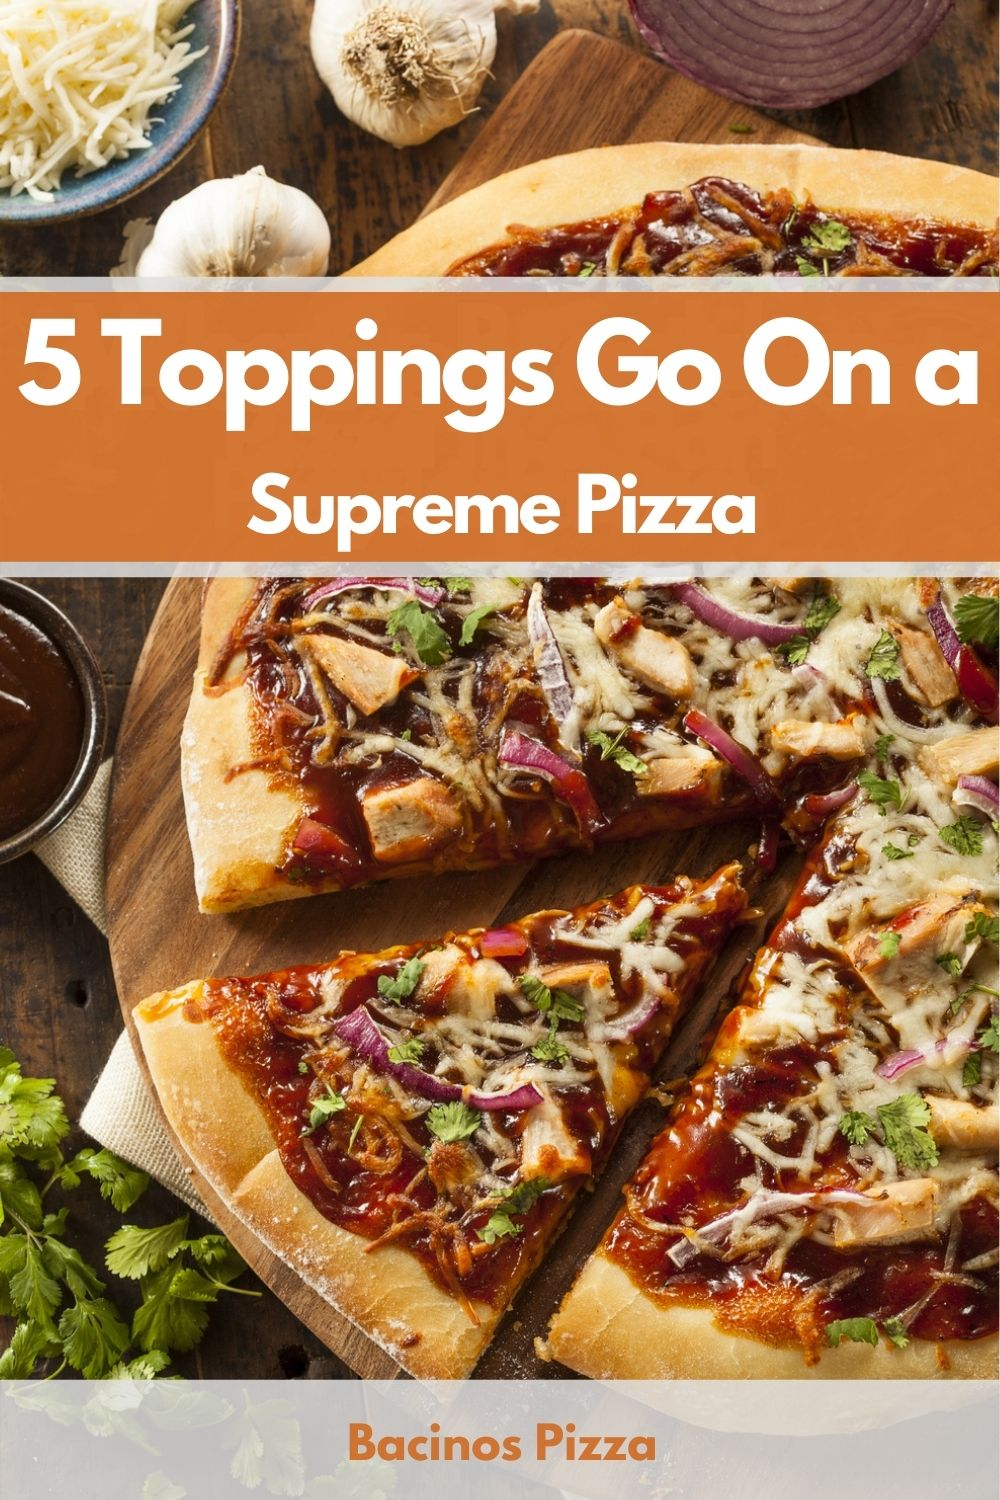 5 Toppings Go On a Supreme Pizza pin